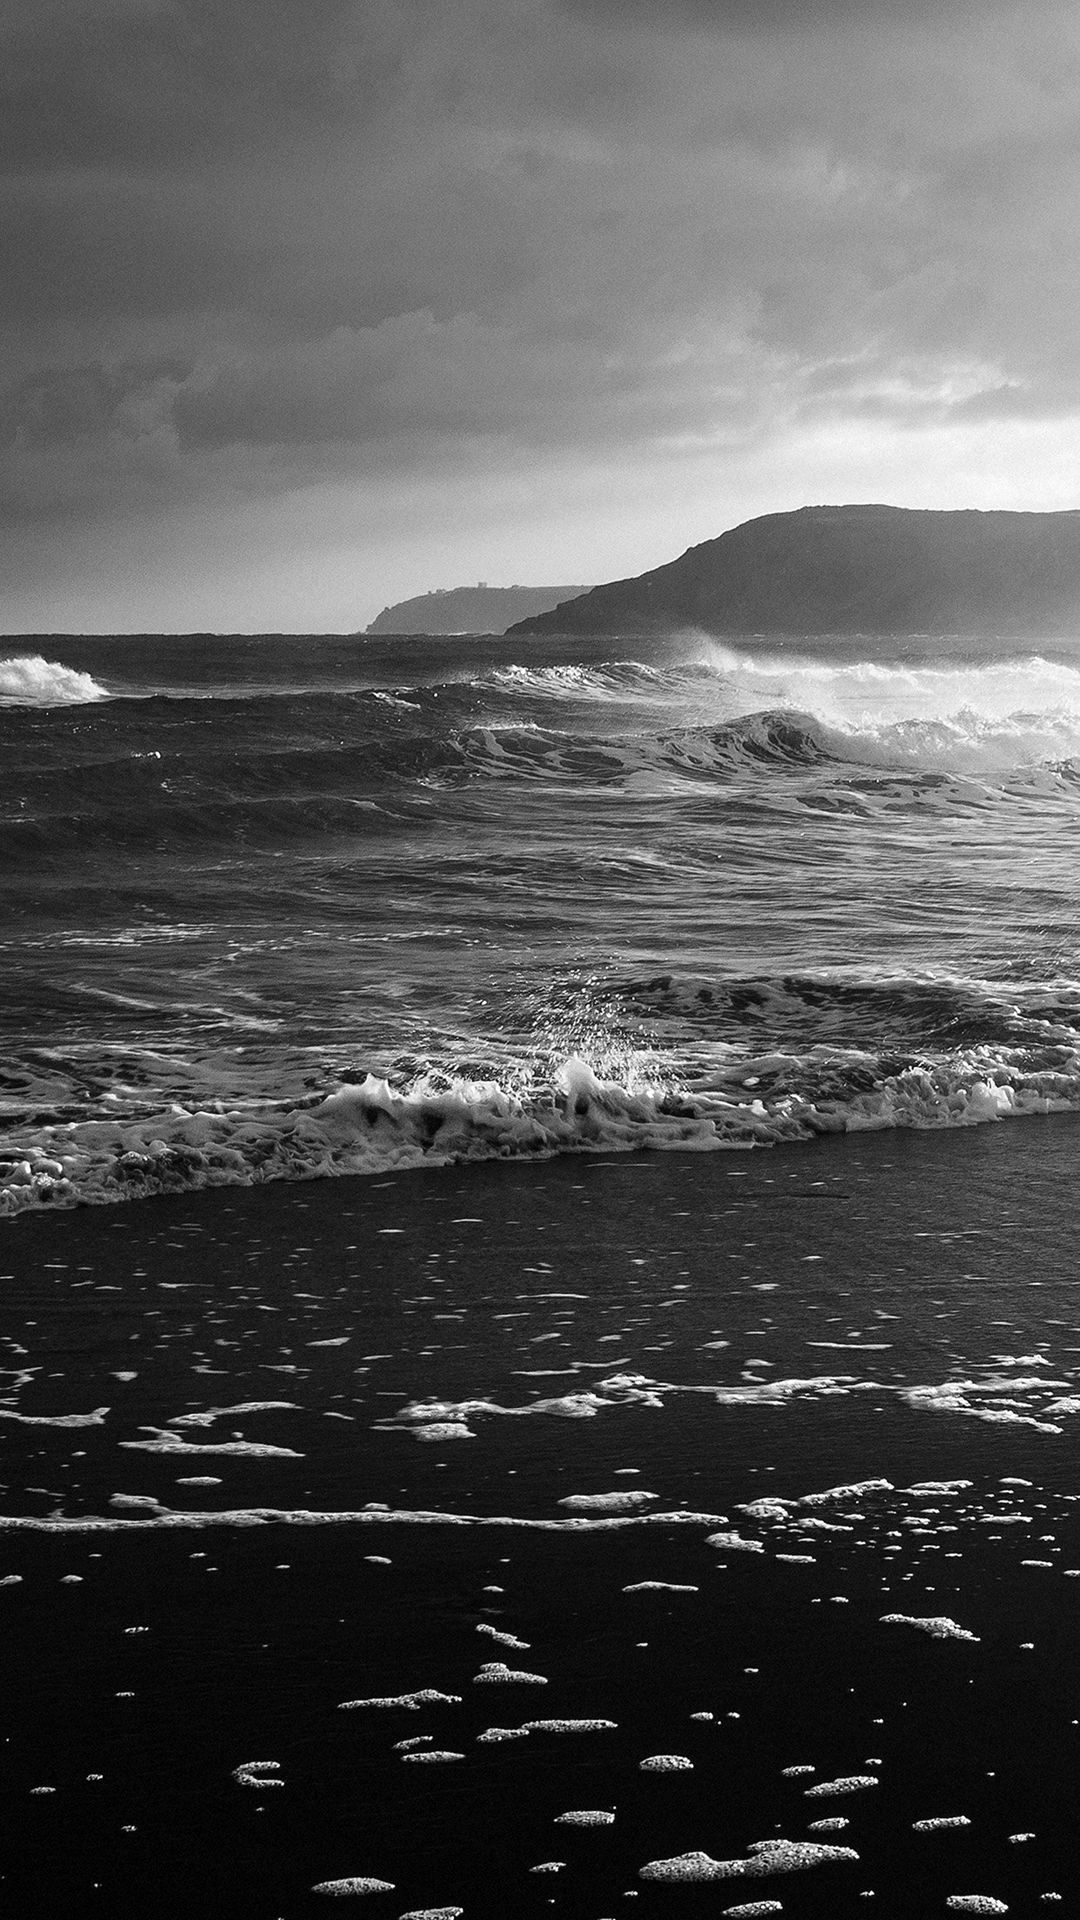 Wallpaper iphone black and white - Beach Costal Nature Sea Water Summer Flare Iphone 6 Wallpaper